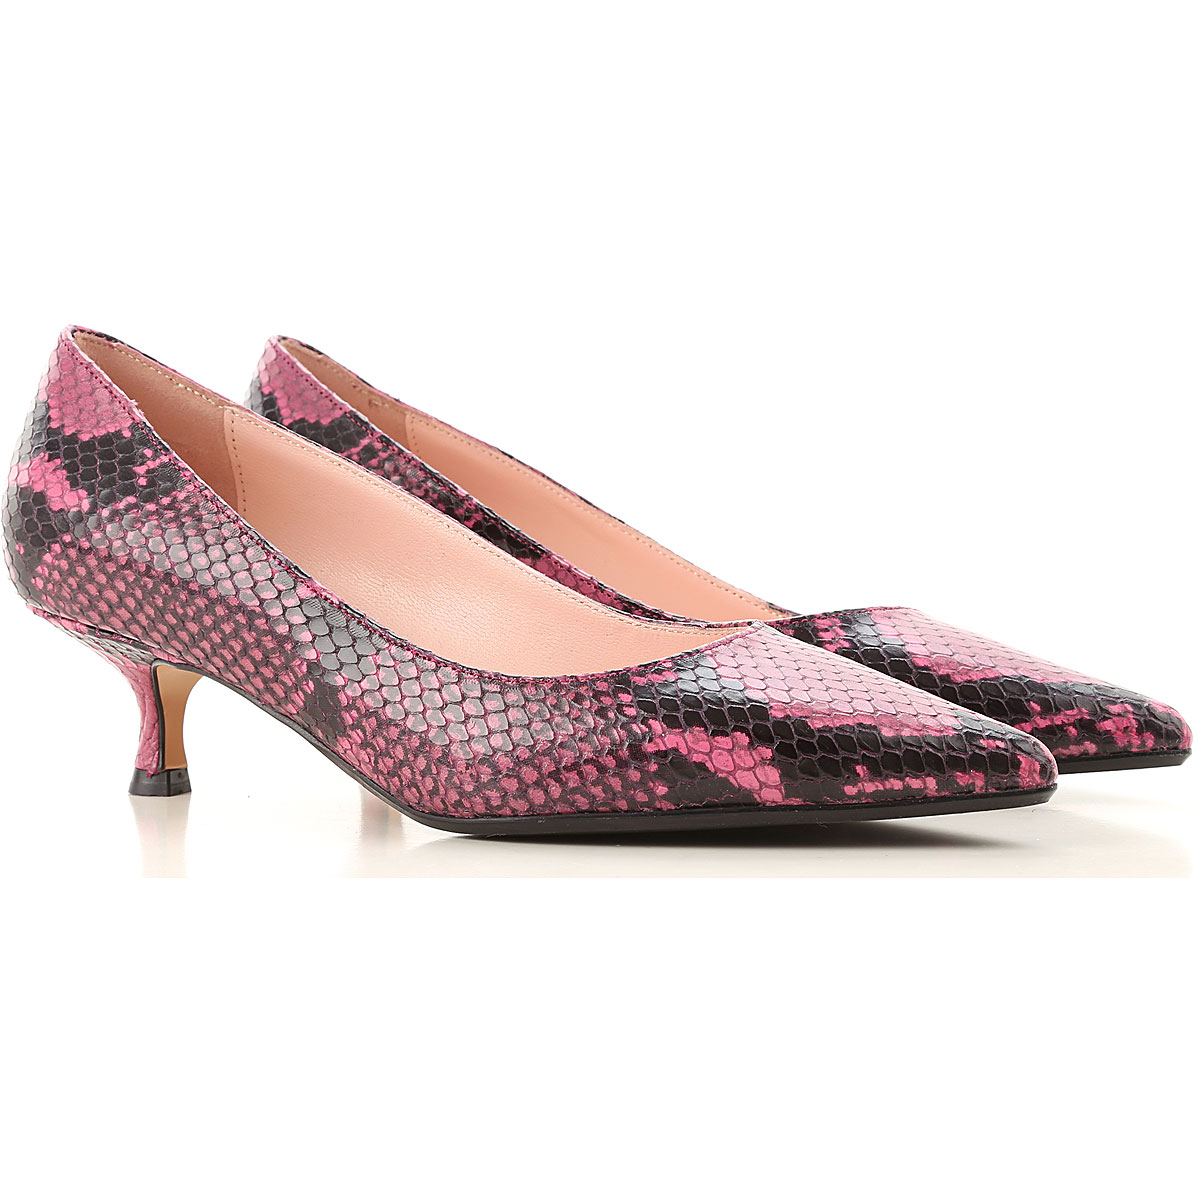 Anna F. Pumps & High Heels for Women, fuxia, Leather, 2019, 11 7